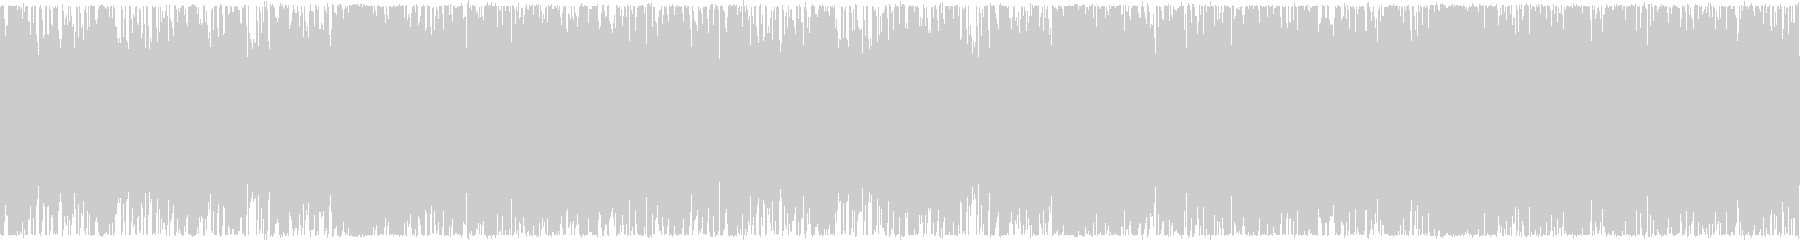 Exciting opening latin's unreproduced waveform